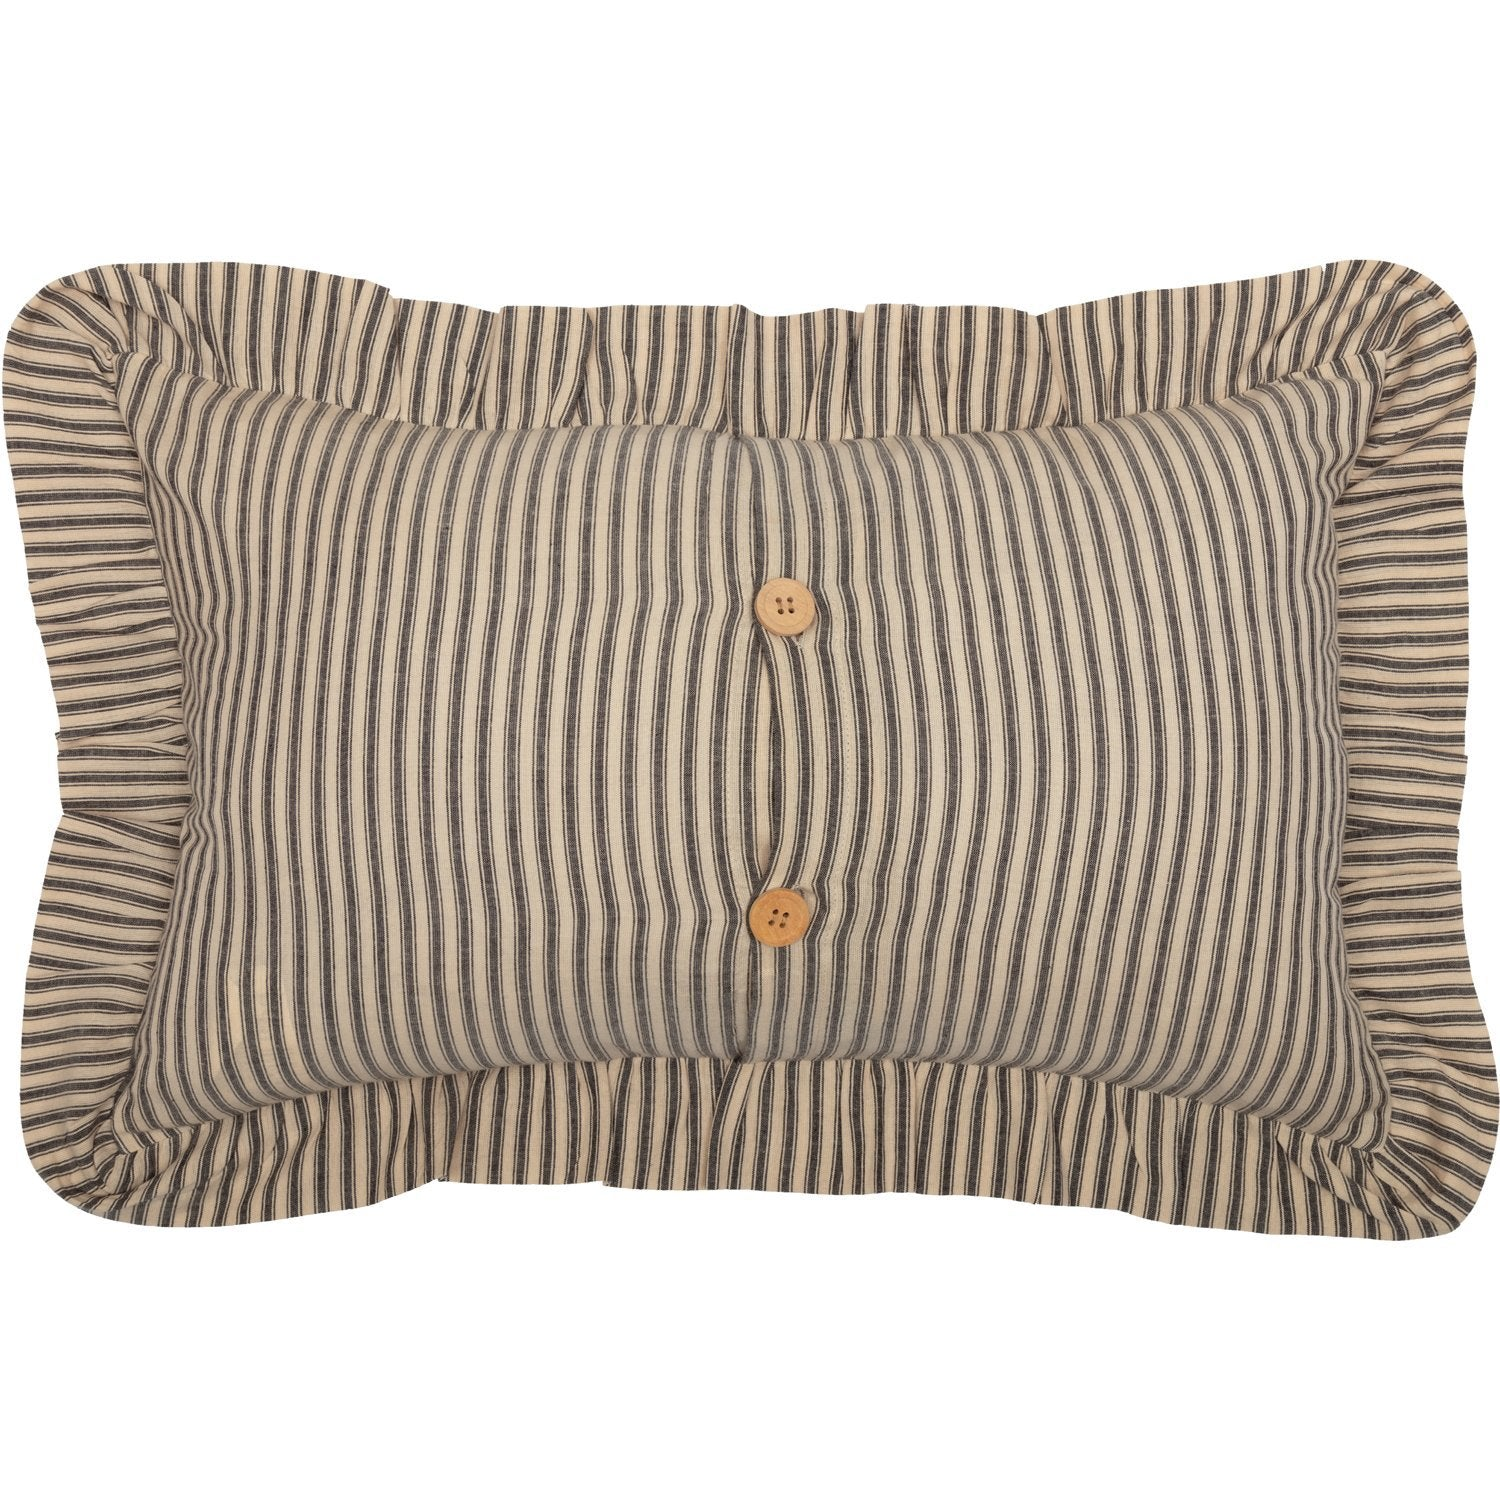 Sawyer Mill Charcoal Ticking Stripe Fabric Pillow.